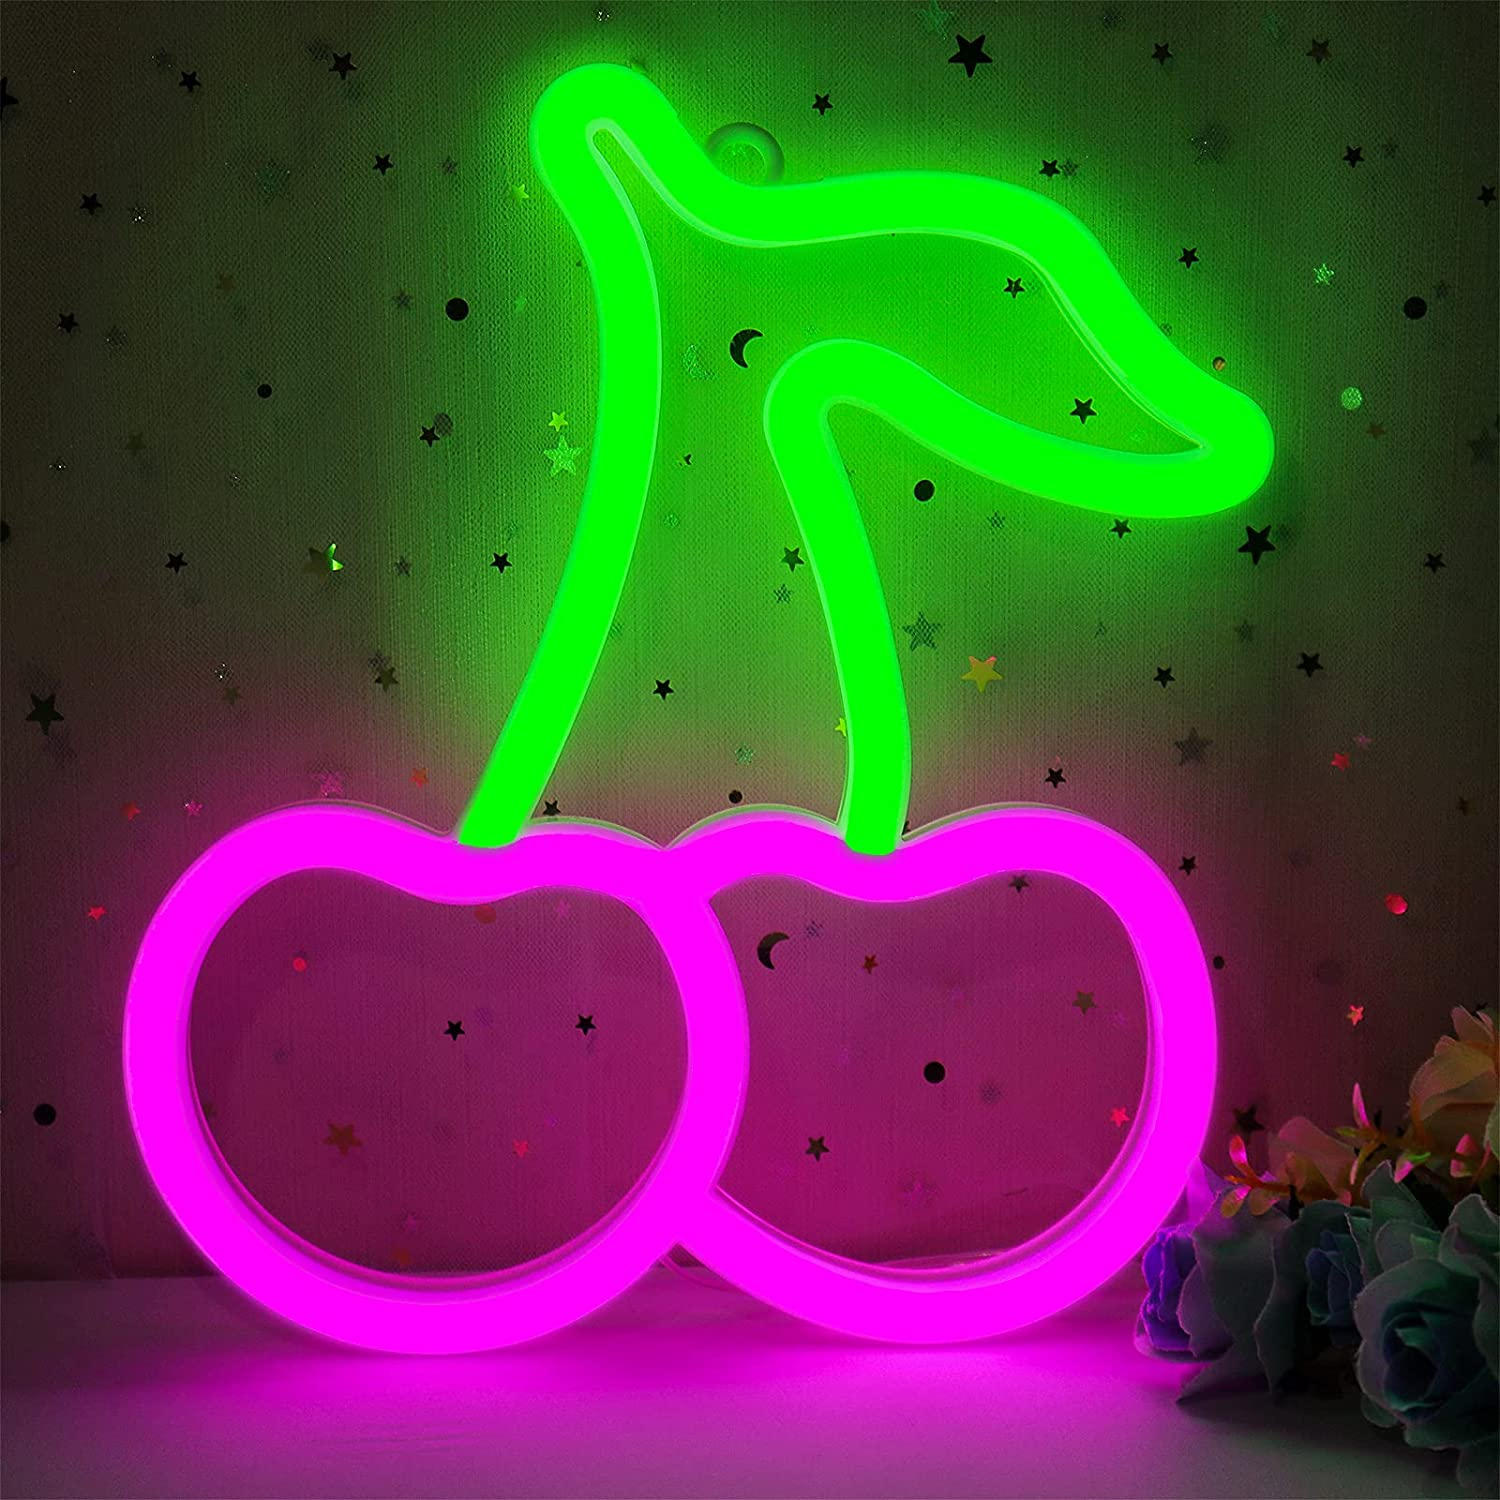 Cherry Neon Sign for Wall Decor, Cisteen Led Neon Light Wall Sign Hanging Art Light Children Light for Kids' Bedroom, Baby Nursery Room, Party, Christmas (USB Charging/Battery Powered) (Green&Pink)